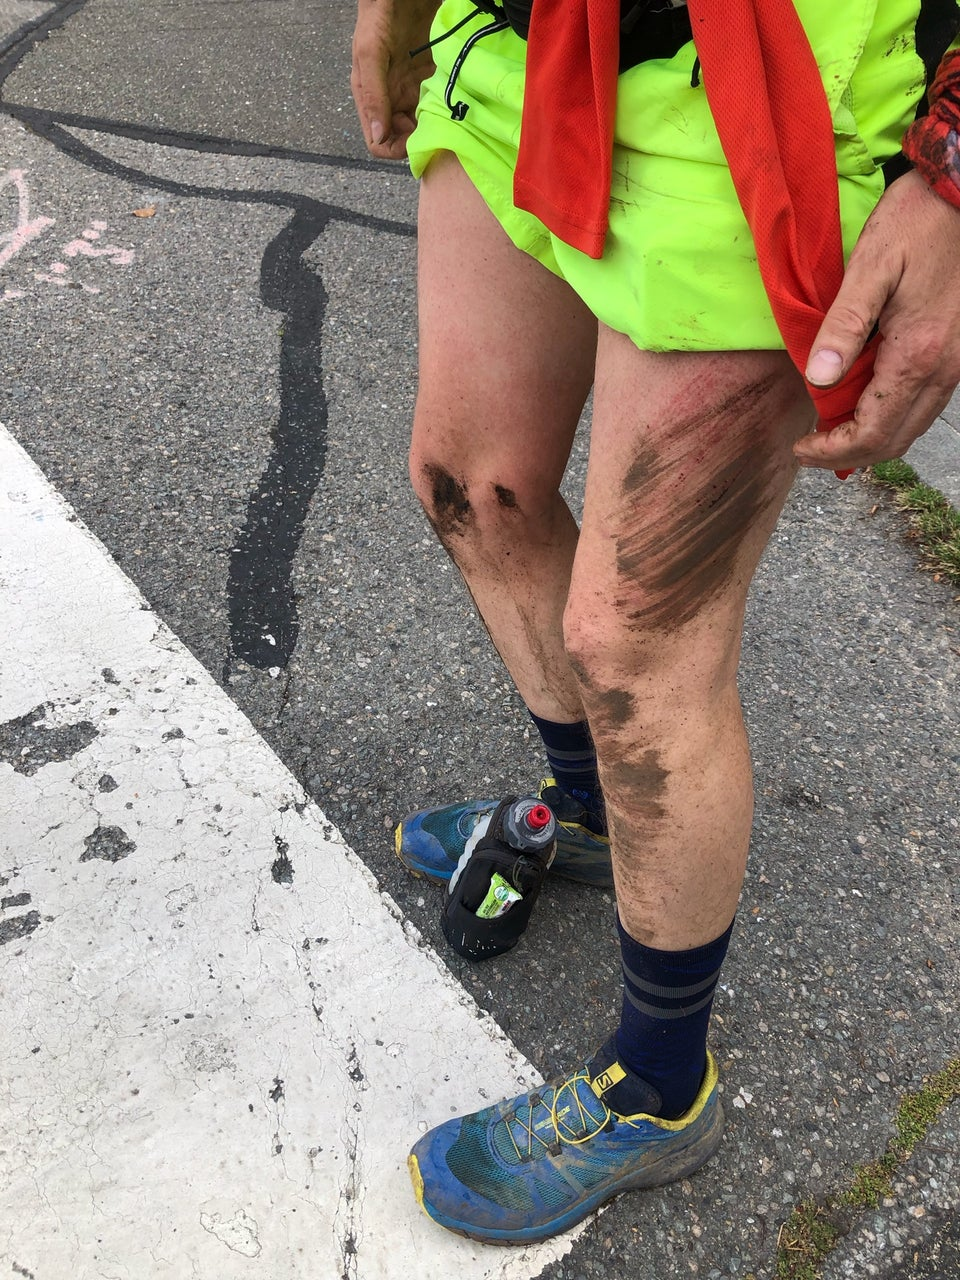 Tantek standing, mud and scrapes on left leg and right shin, standing on asphalt